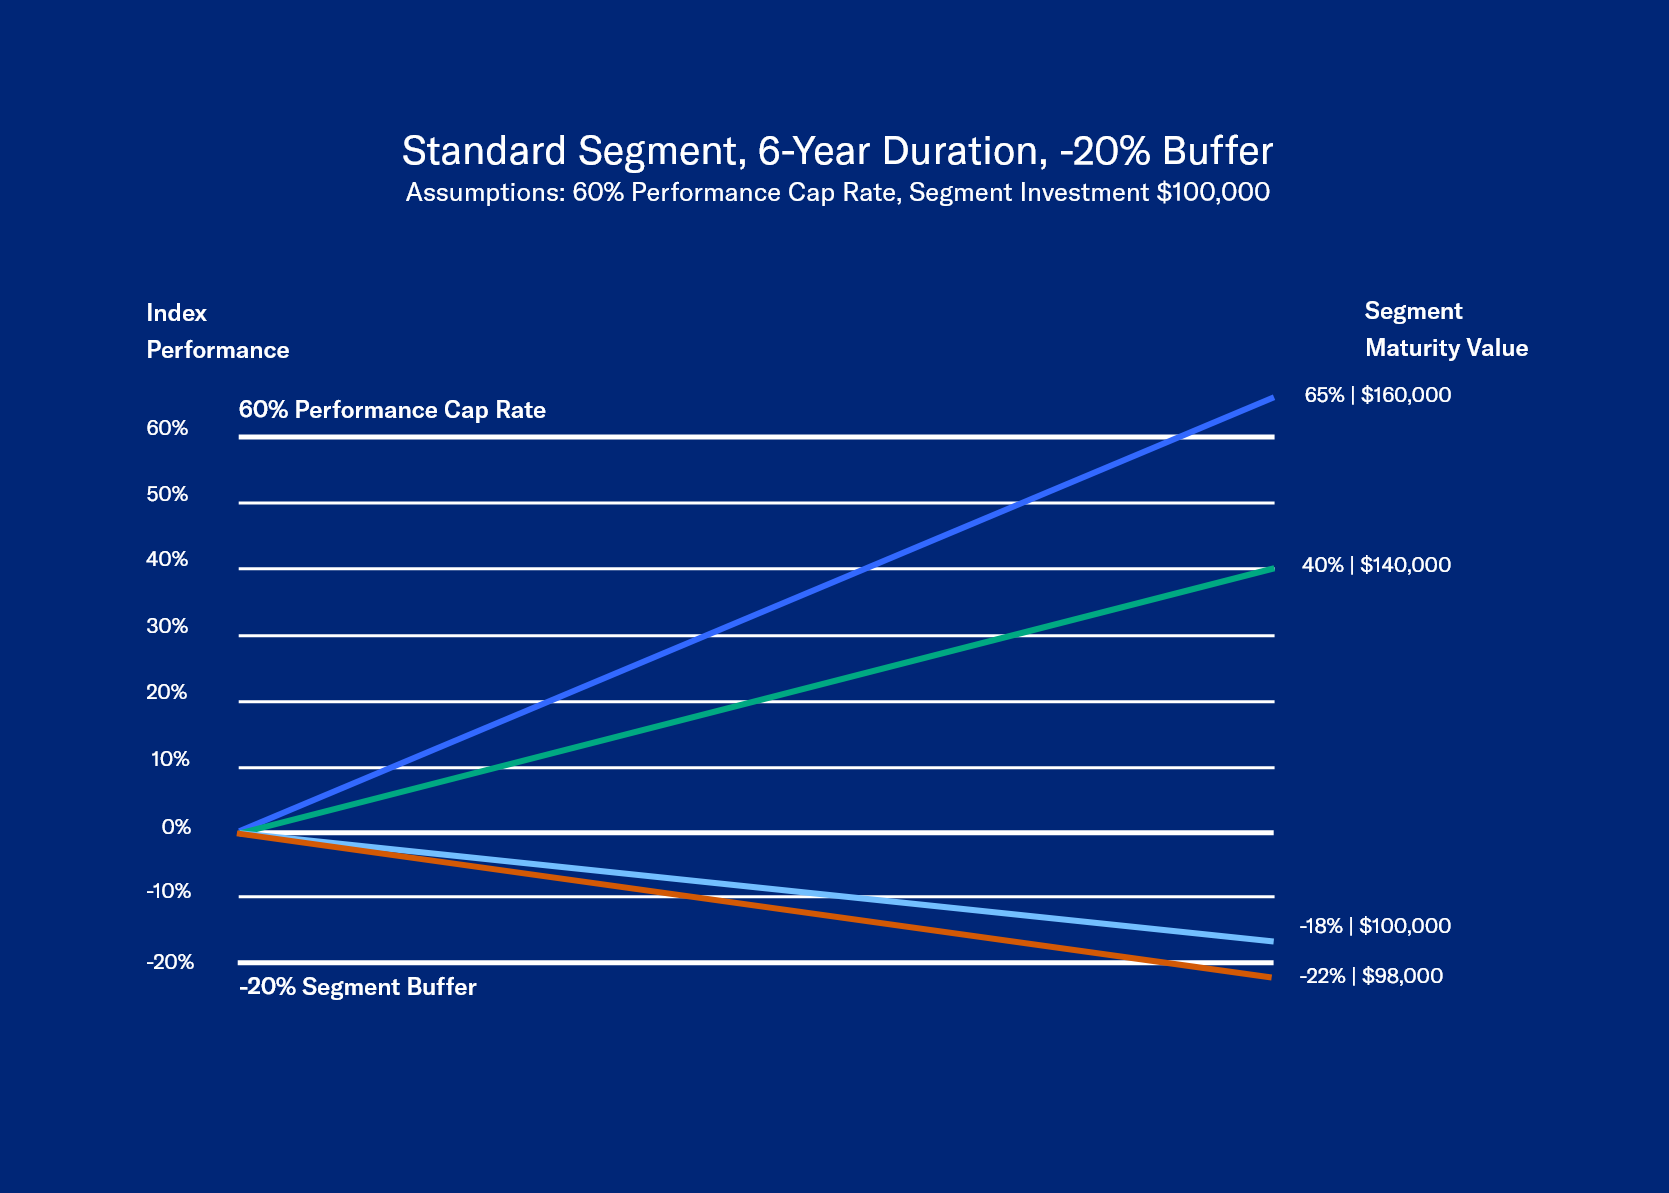 6 year standard segment duration table